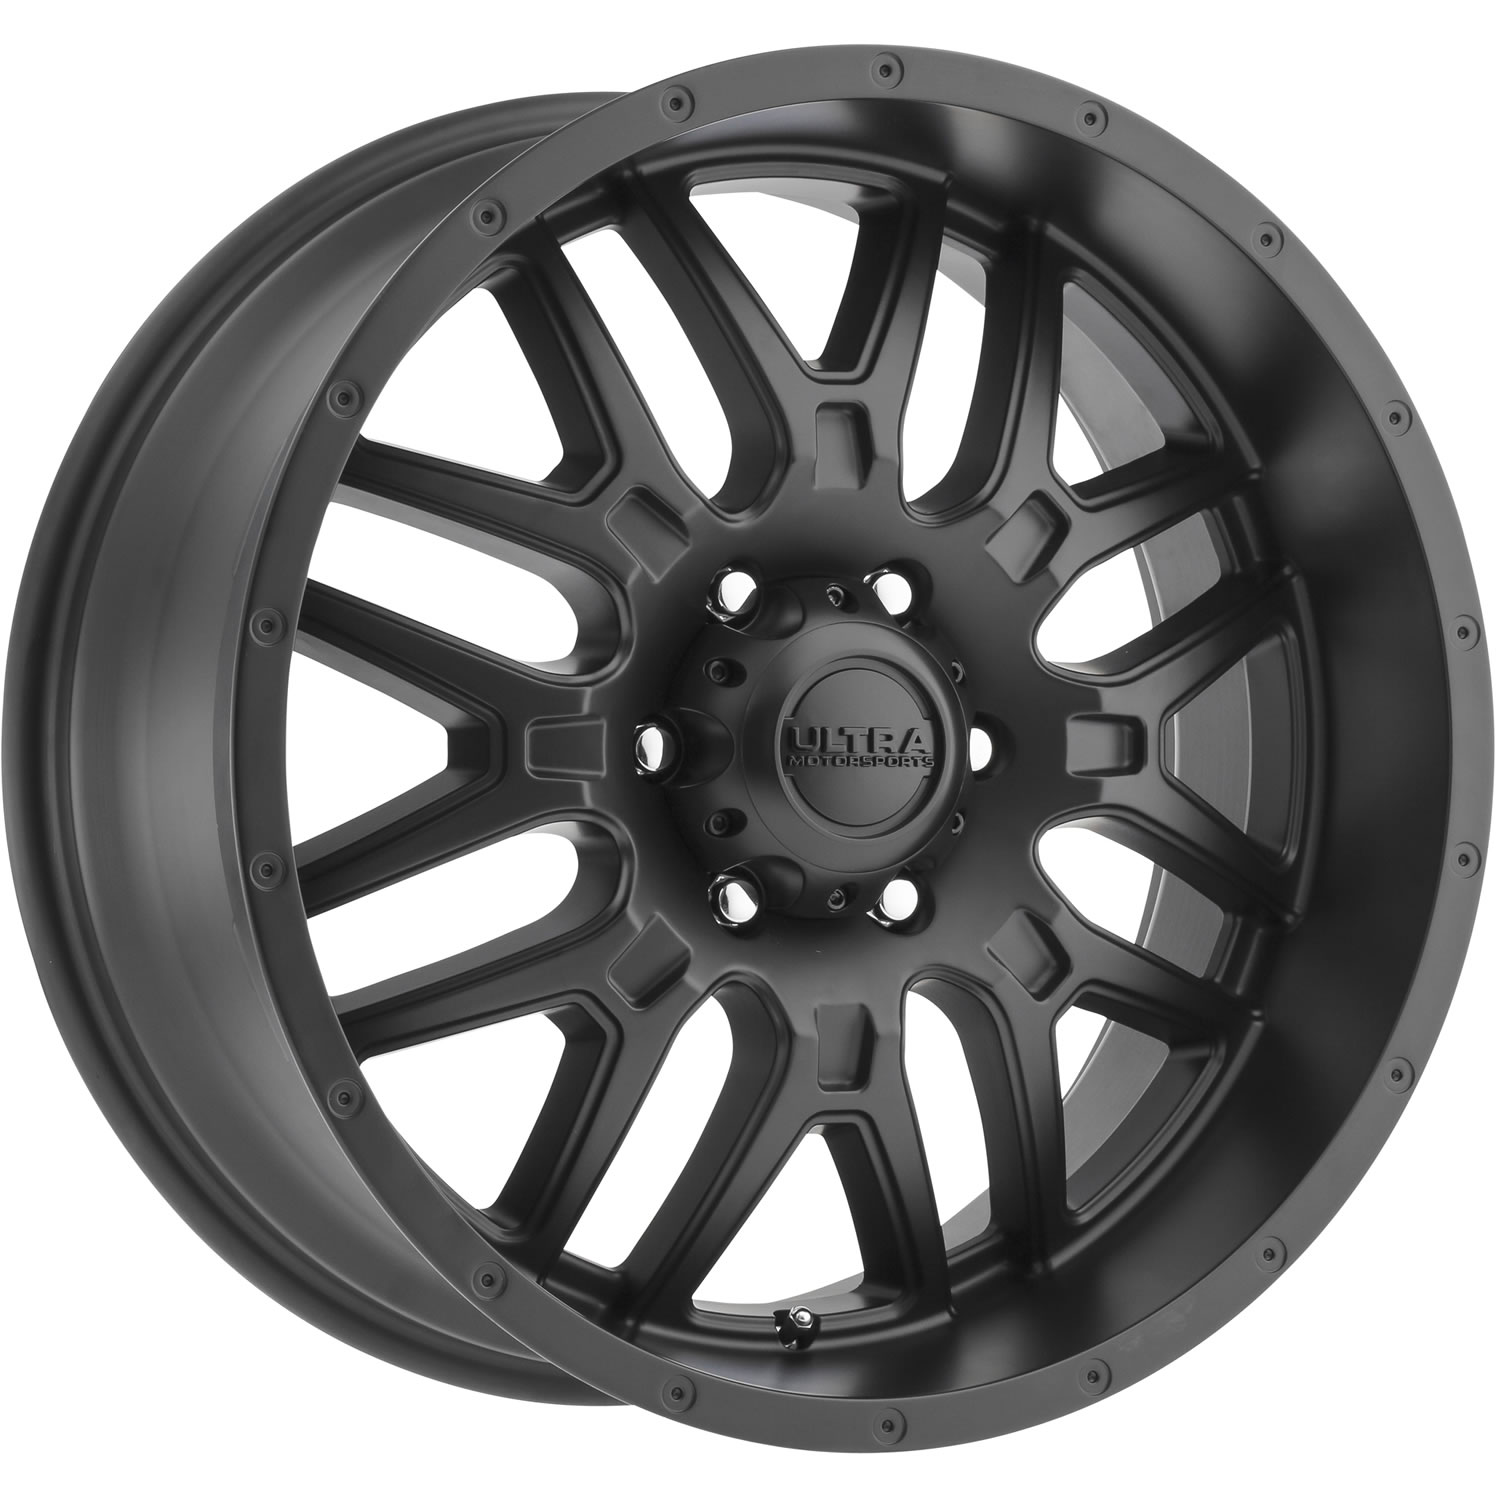 Ultra Hunter 20x10 25 Custom Wheels 203 2173SB25